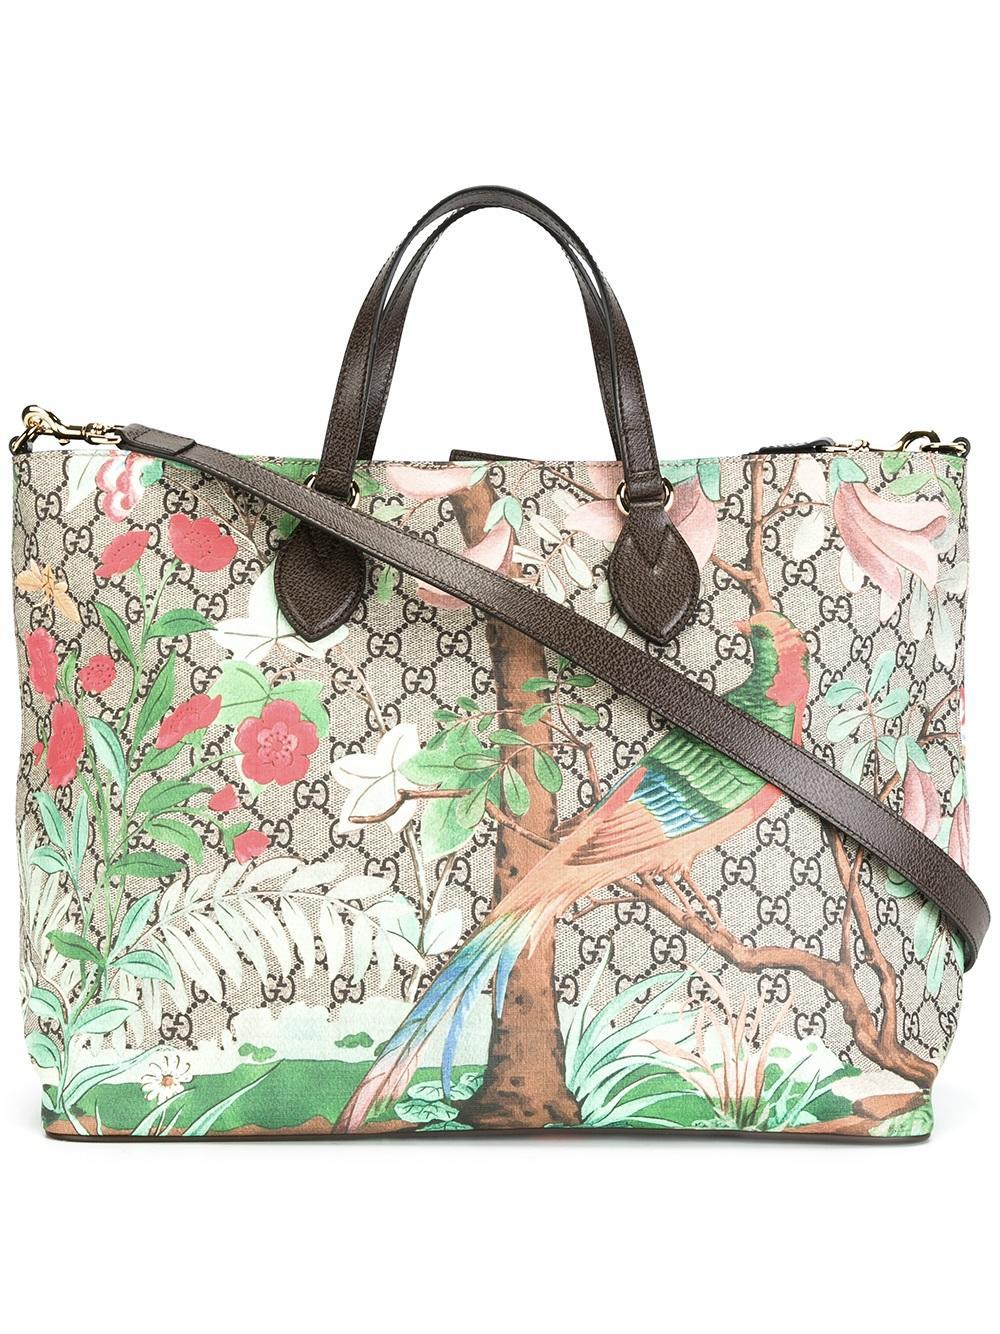 56ce1d5becd Lyst - Gucci Tian Gg Supreme Tote Bag in Brown